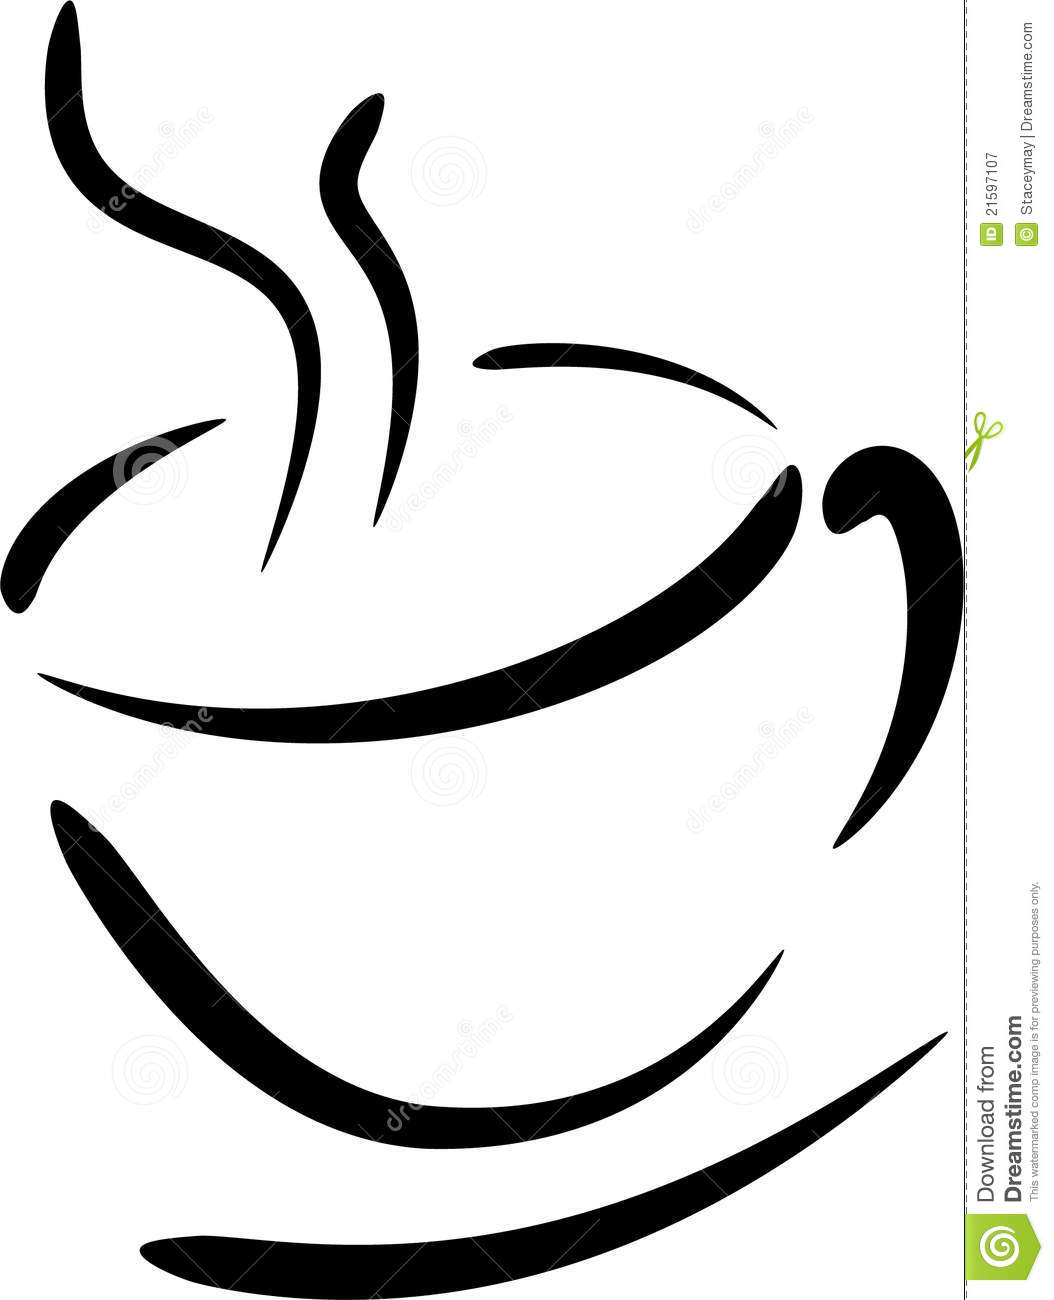 Coffee Clipart Black And White | Clipart Panda - Free ...